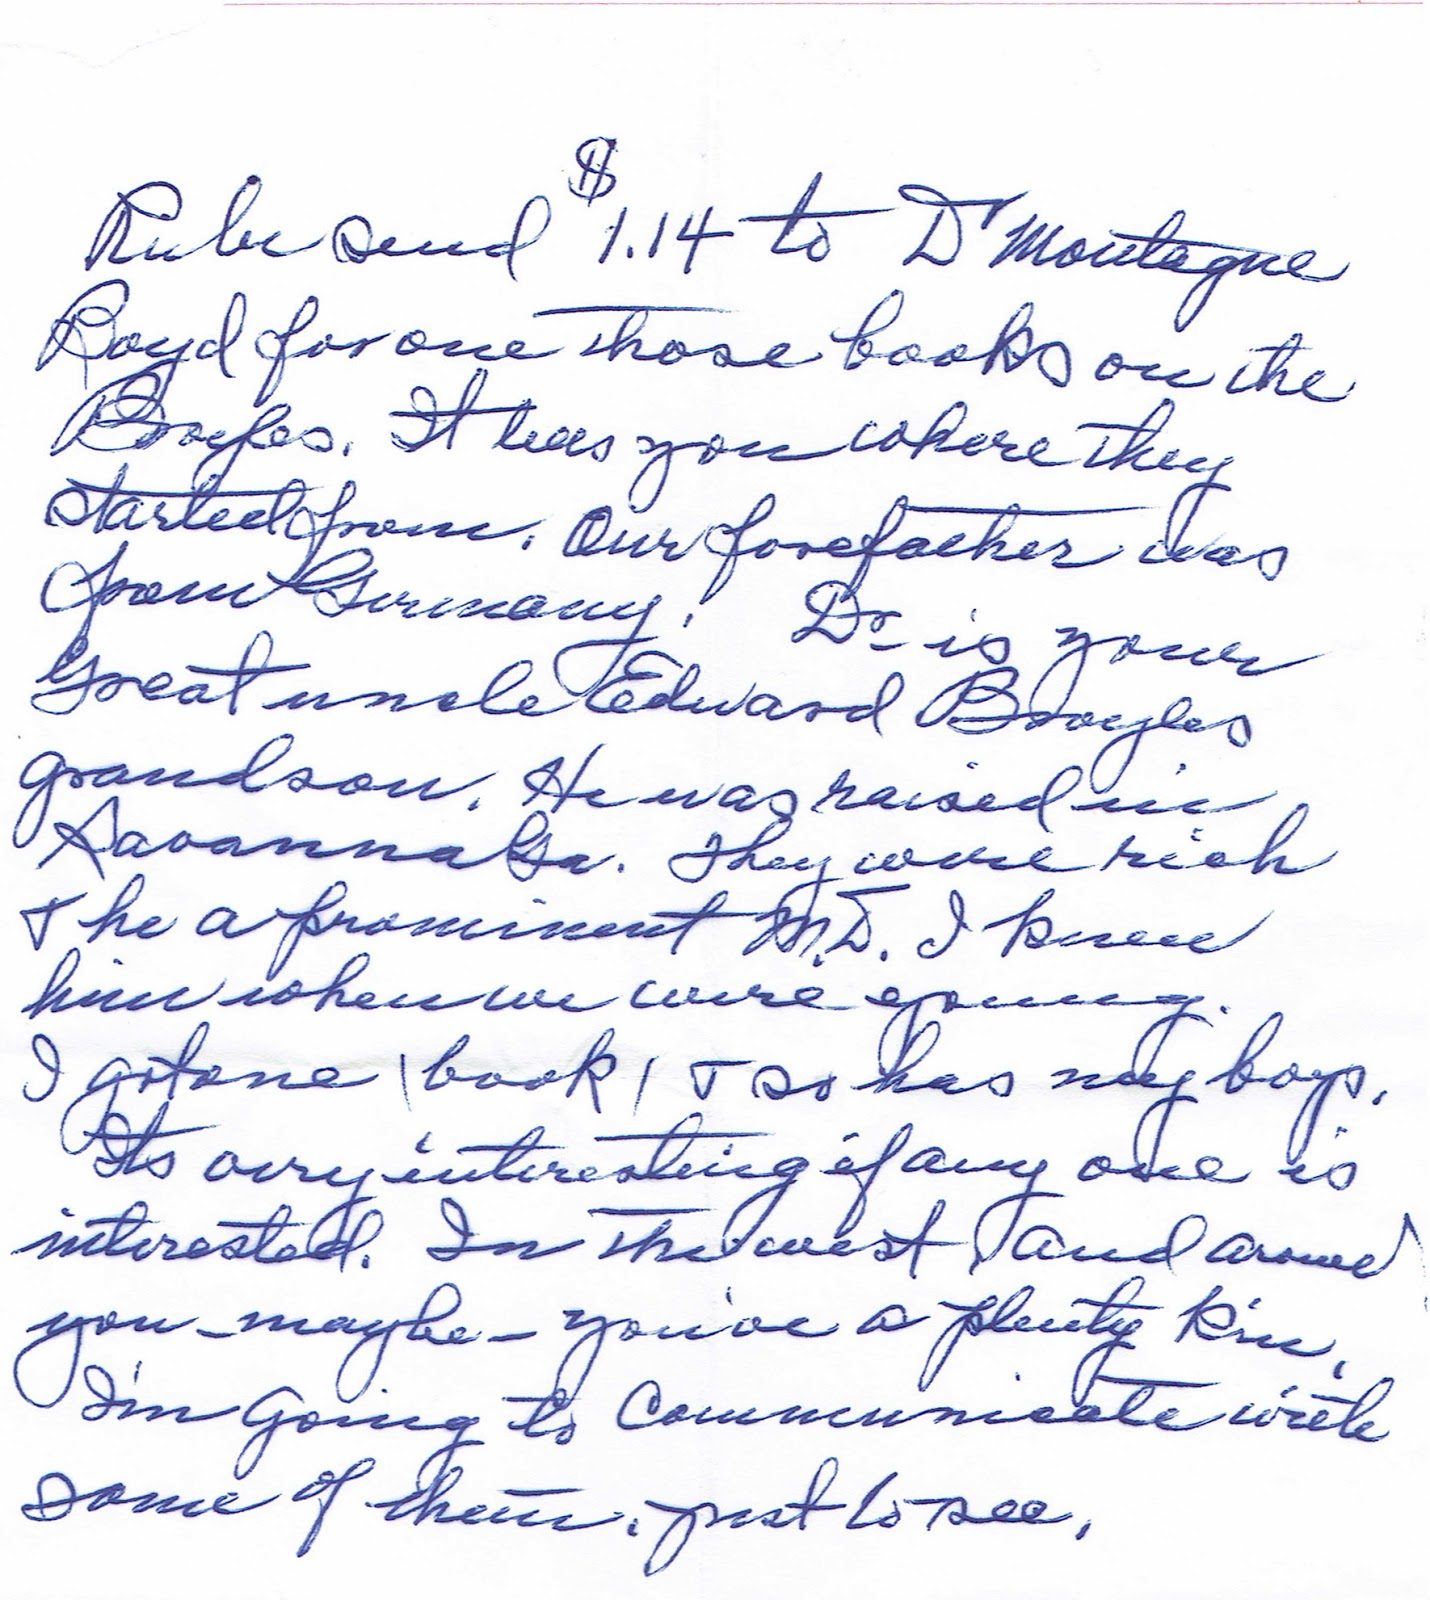 Nellie Broyles Jones writing to Ruby Davis regarding a genealogy book on the Broyles family